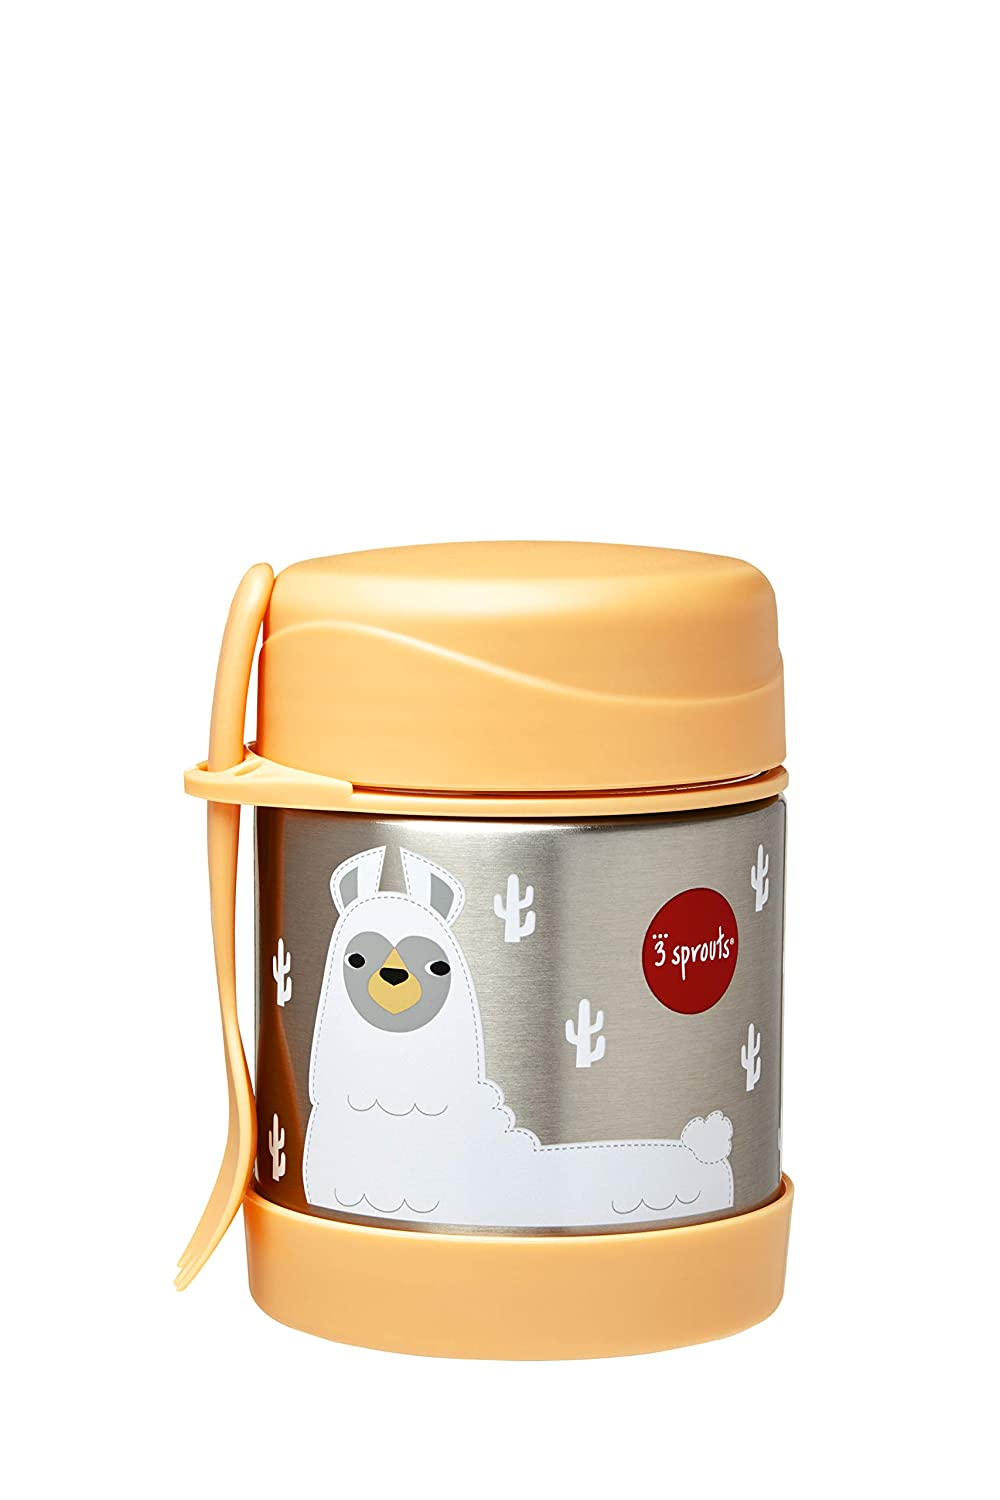 3 Sprouts Stainless Steel Food Jar and Spork for Kids, Llama